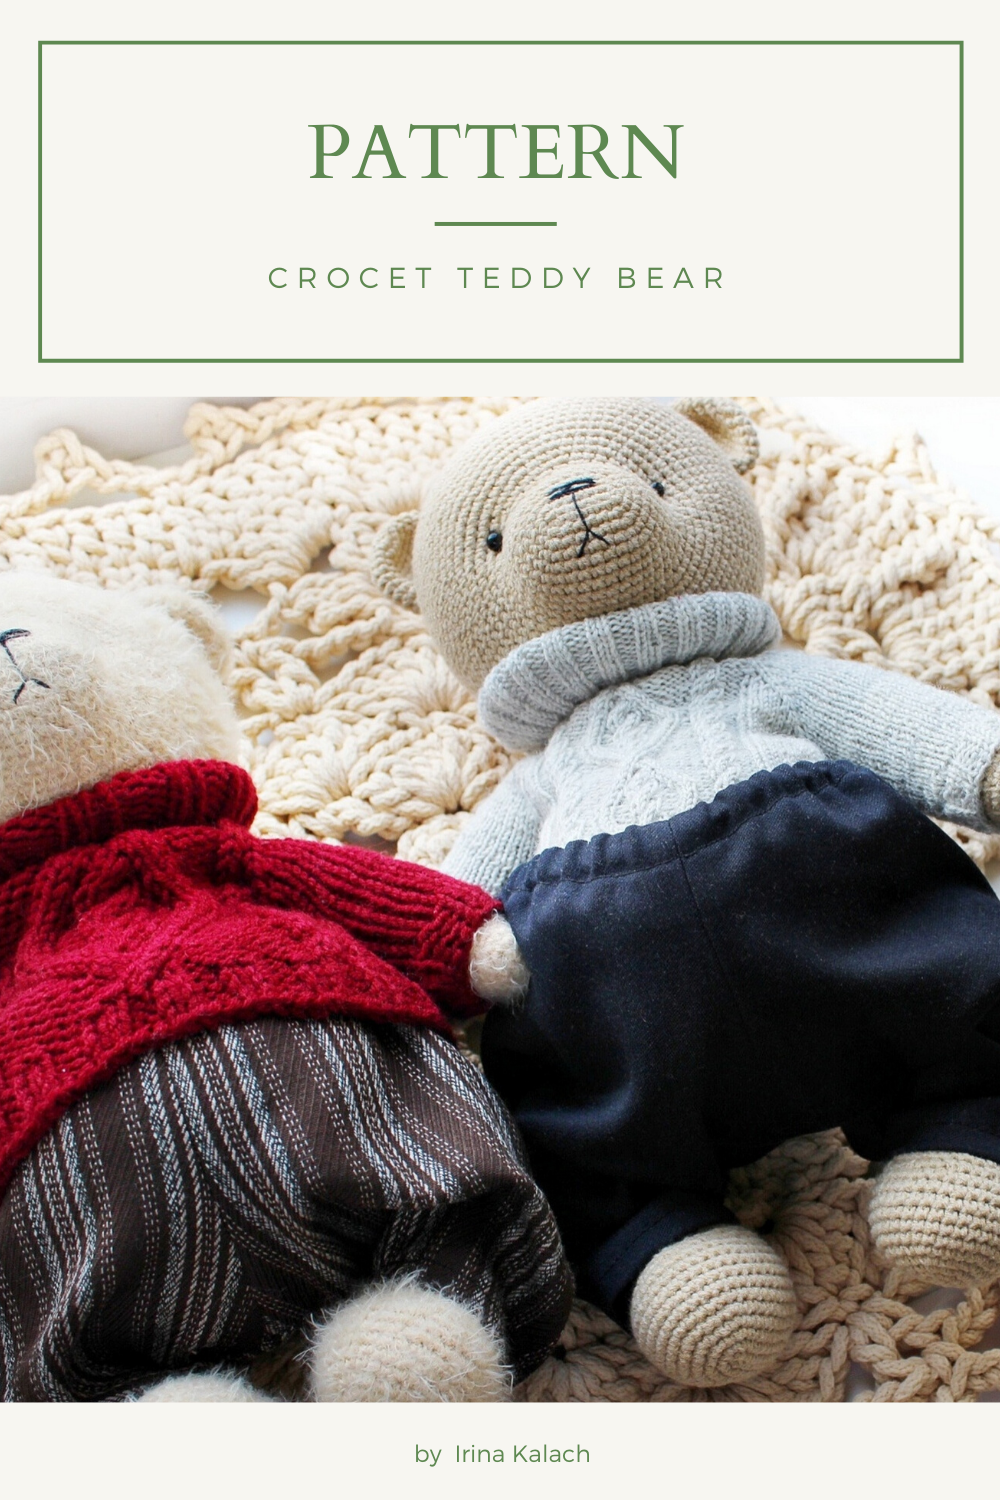 PATTERN Crochet Teddy bear. PATTERN Amigurumi Teddy bear. Tutorial crochet toy animal pdf.